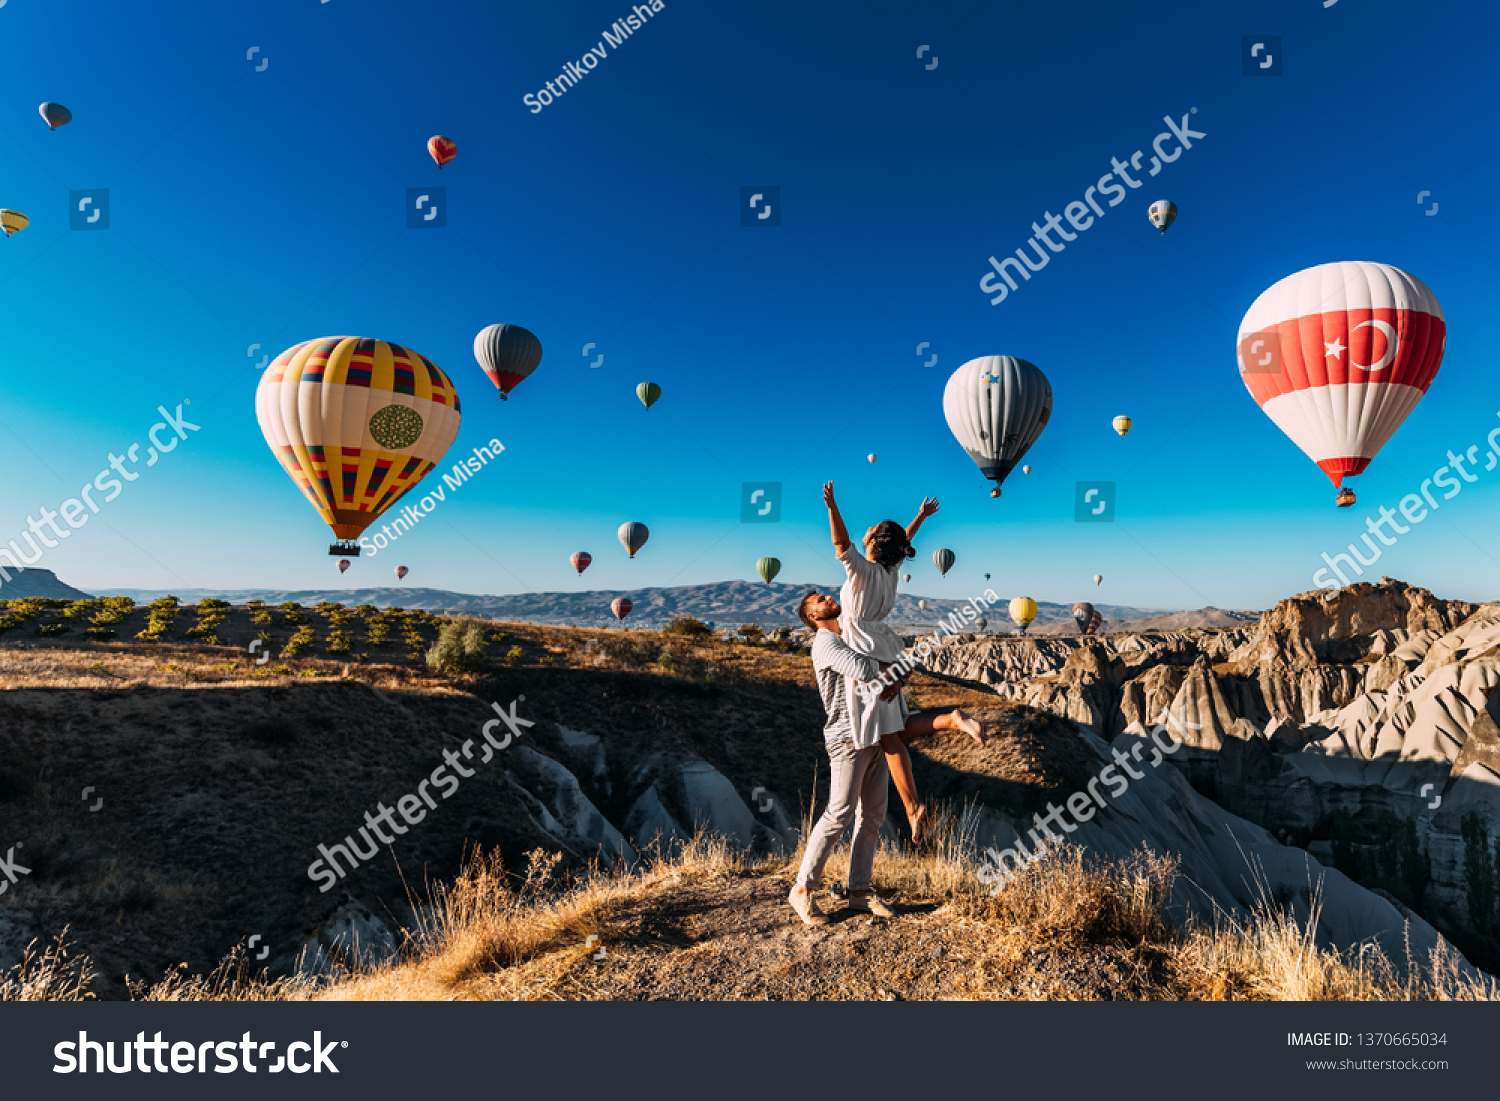 Wedding travel. Honeymoon trip. Couple in love among balloons. A guy proposes to a girl. Couple in love in Cappadocia. Couple in Turkey.  Man and woman traveling. Festival of balloons. Tourists #1370665034